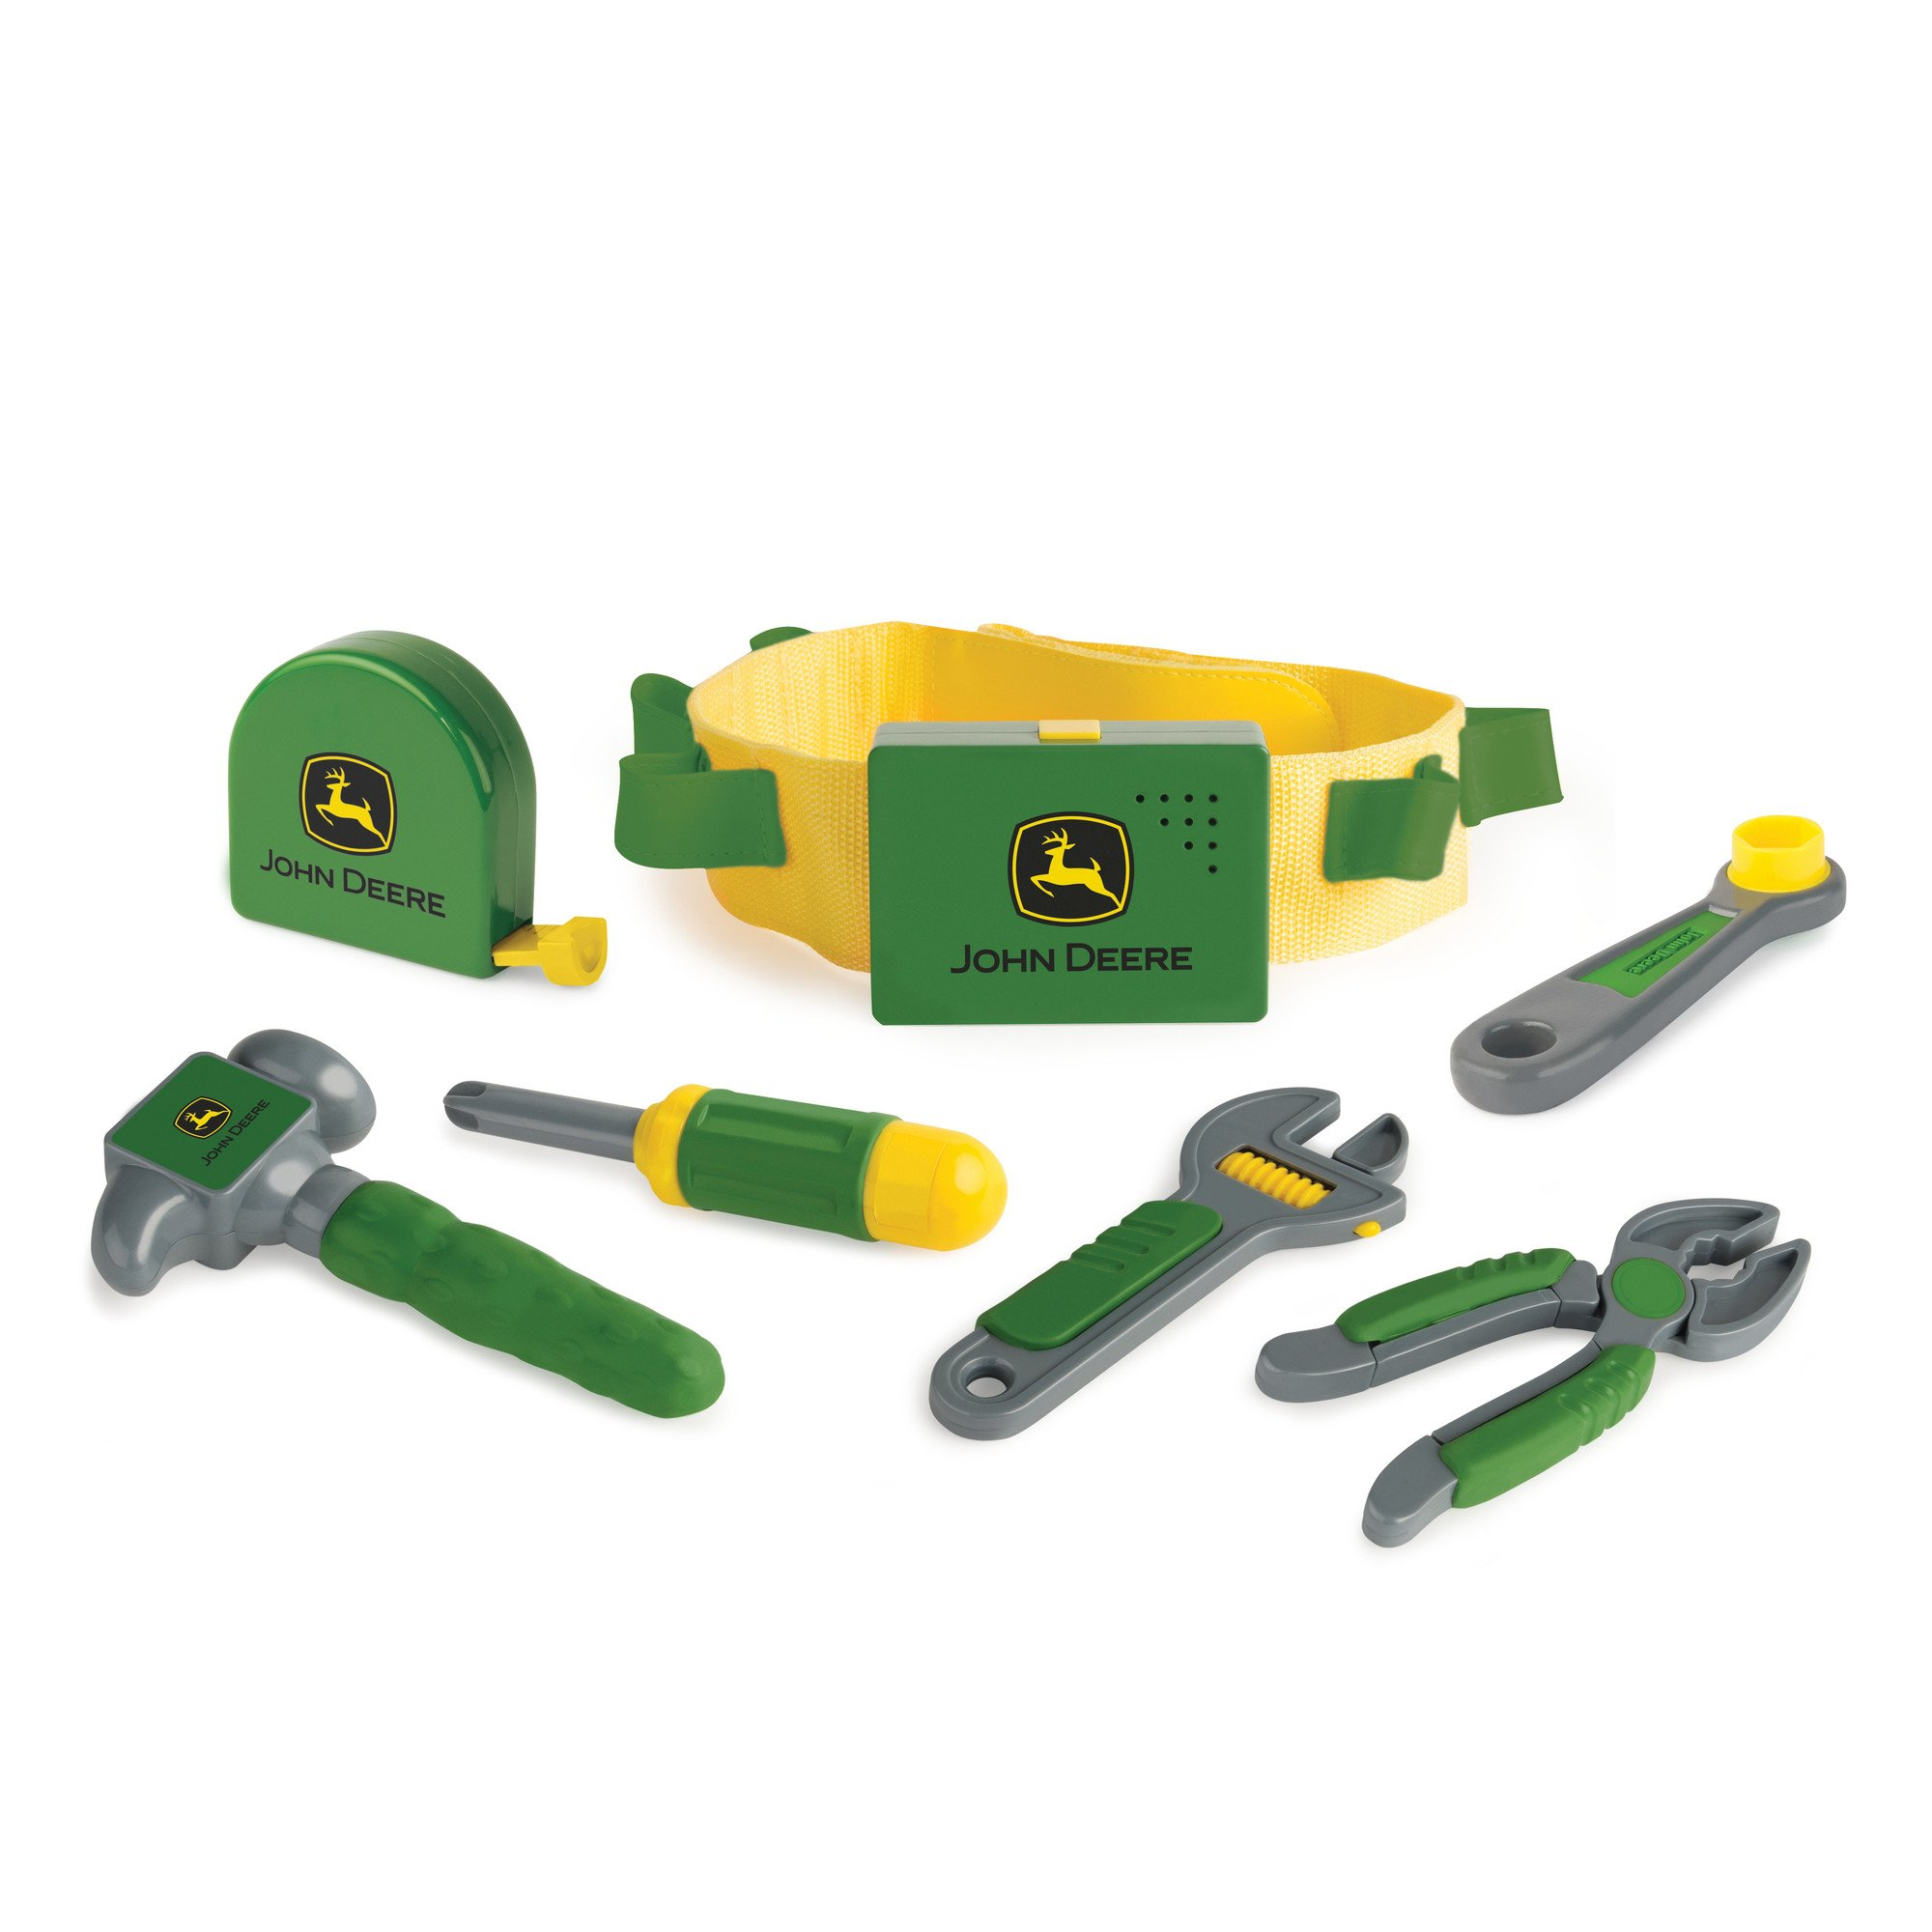 TOMY John Deere Deluxe Talking Toolbelt Preschool Toy by TOMY